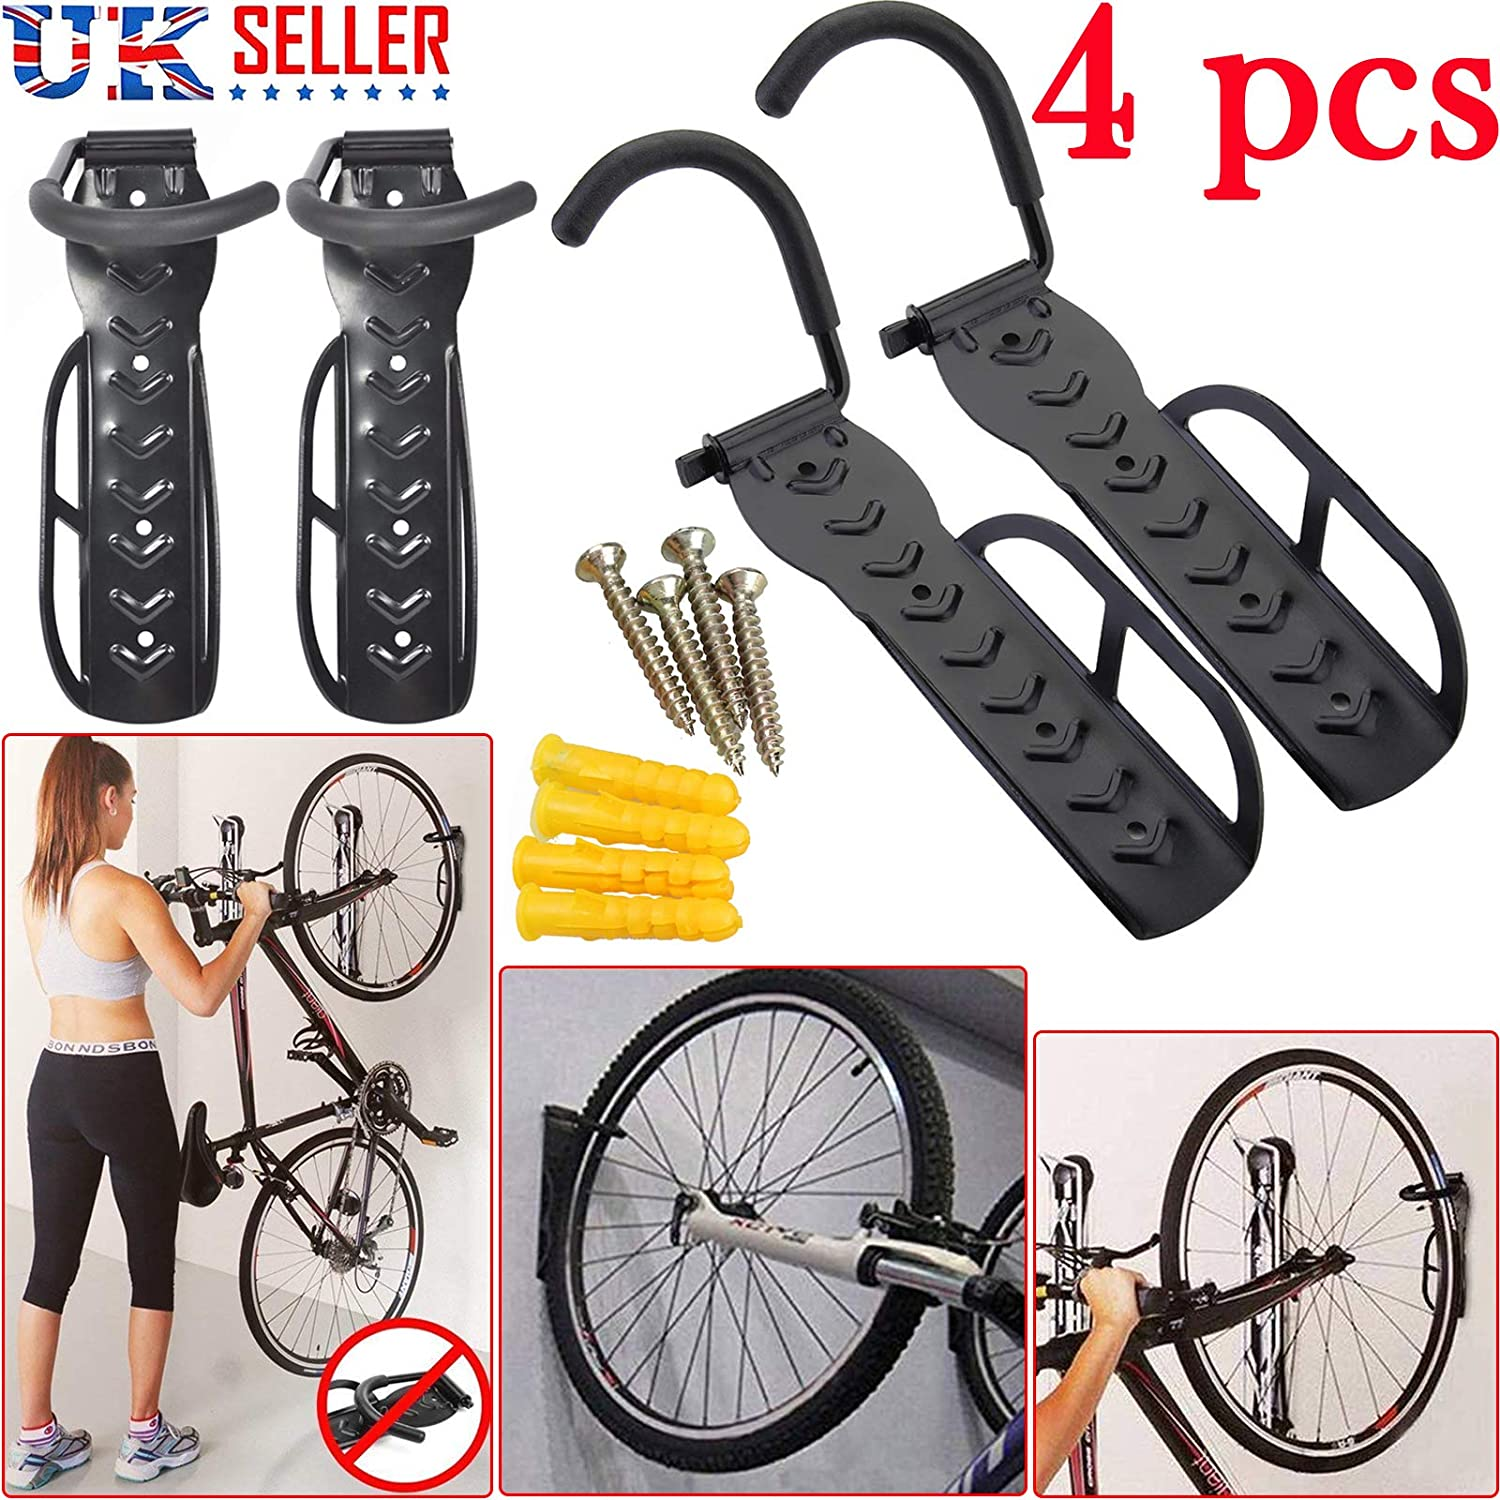 Cycling Bike Storage Garage Wall Mount Rack Hanger Bike Steel Hook Stand Holder